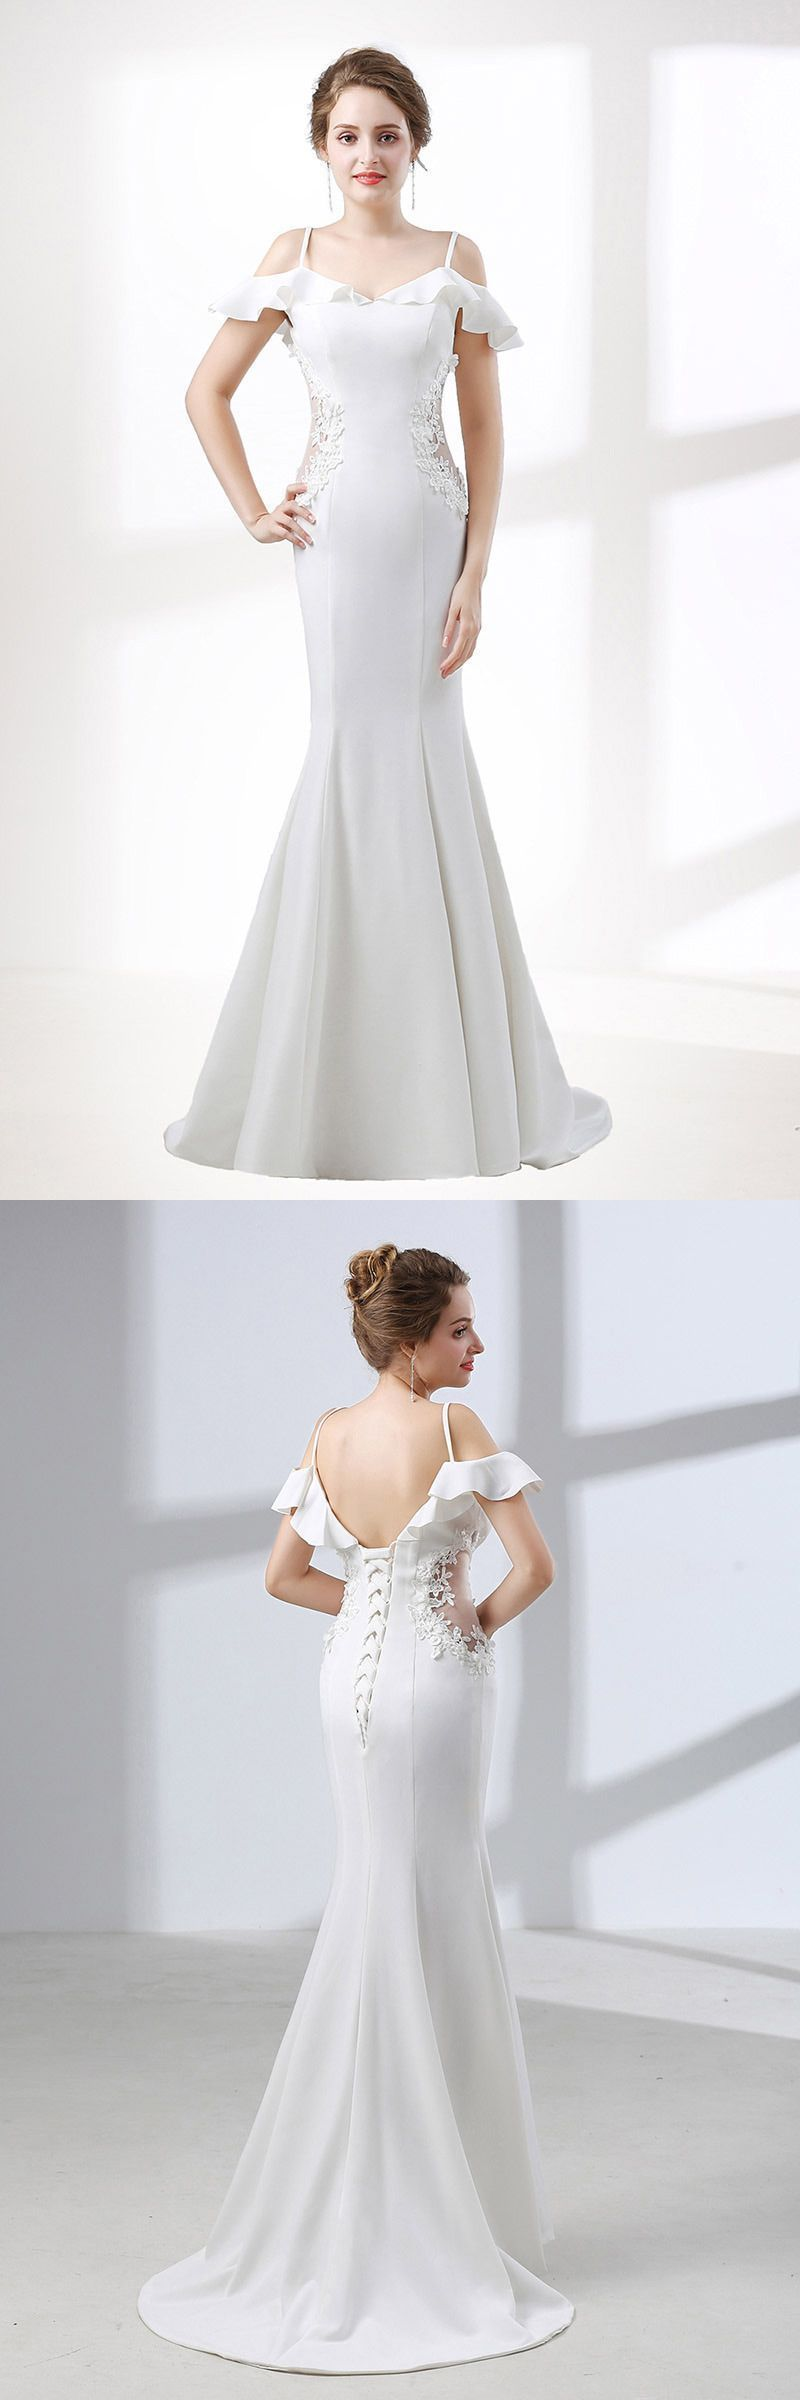 Only 129, Mermaid Wedding Dresses Trumpet Fitted Corset